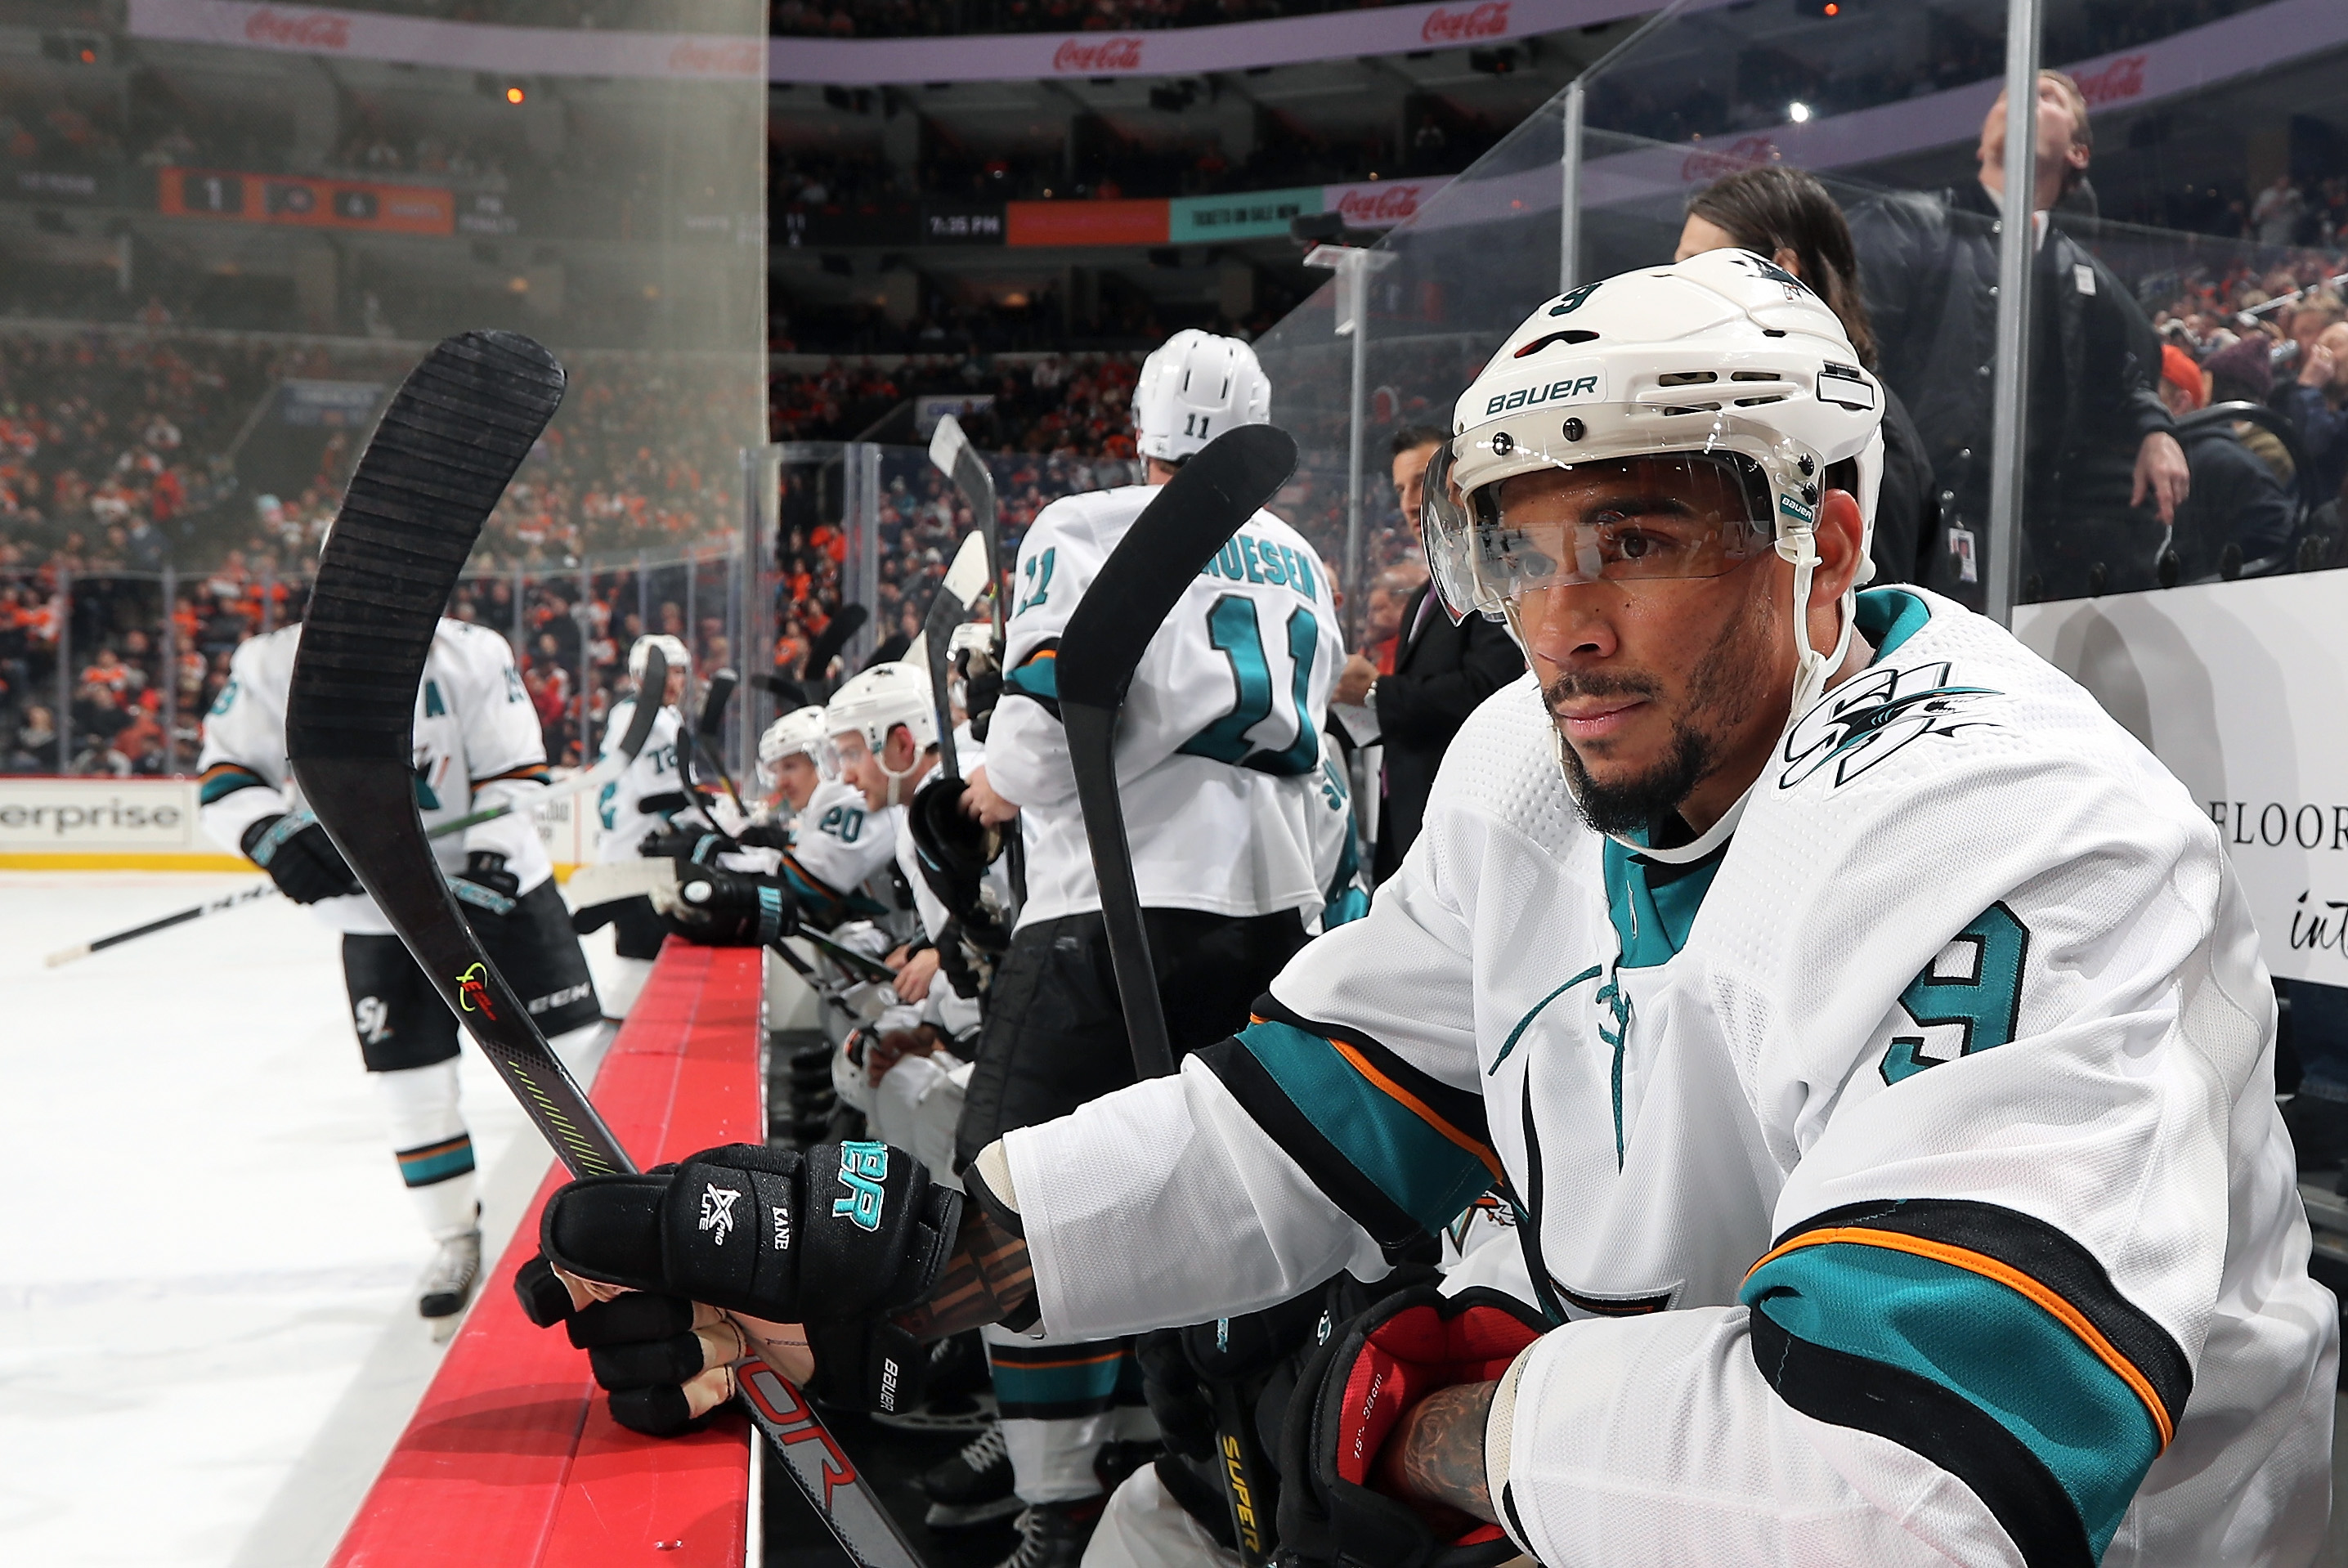 San Jose Sharks wing Evander Kane has some major issues ahead of the 2020-21 season. Kane, who has earned $55 million so far, just filed for bankruptcy.